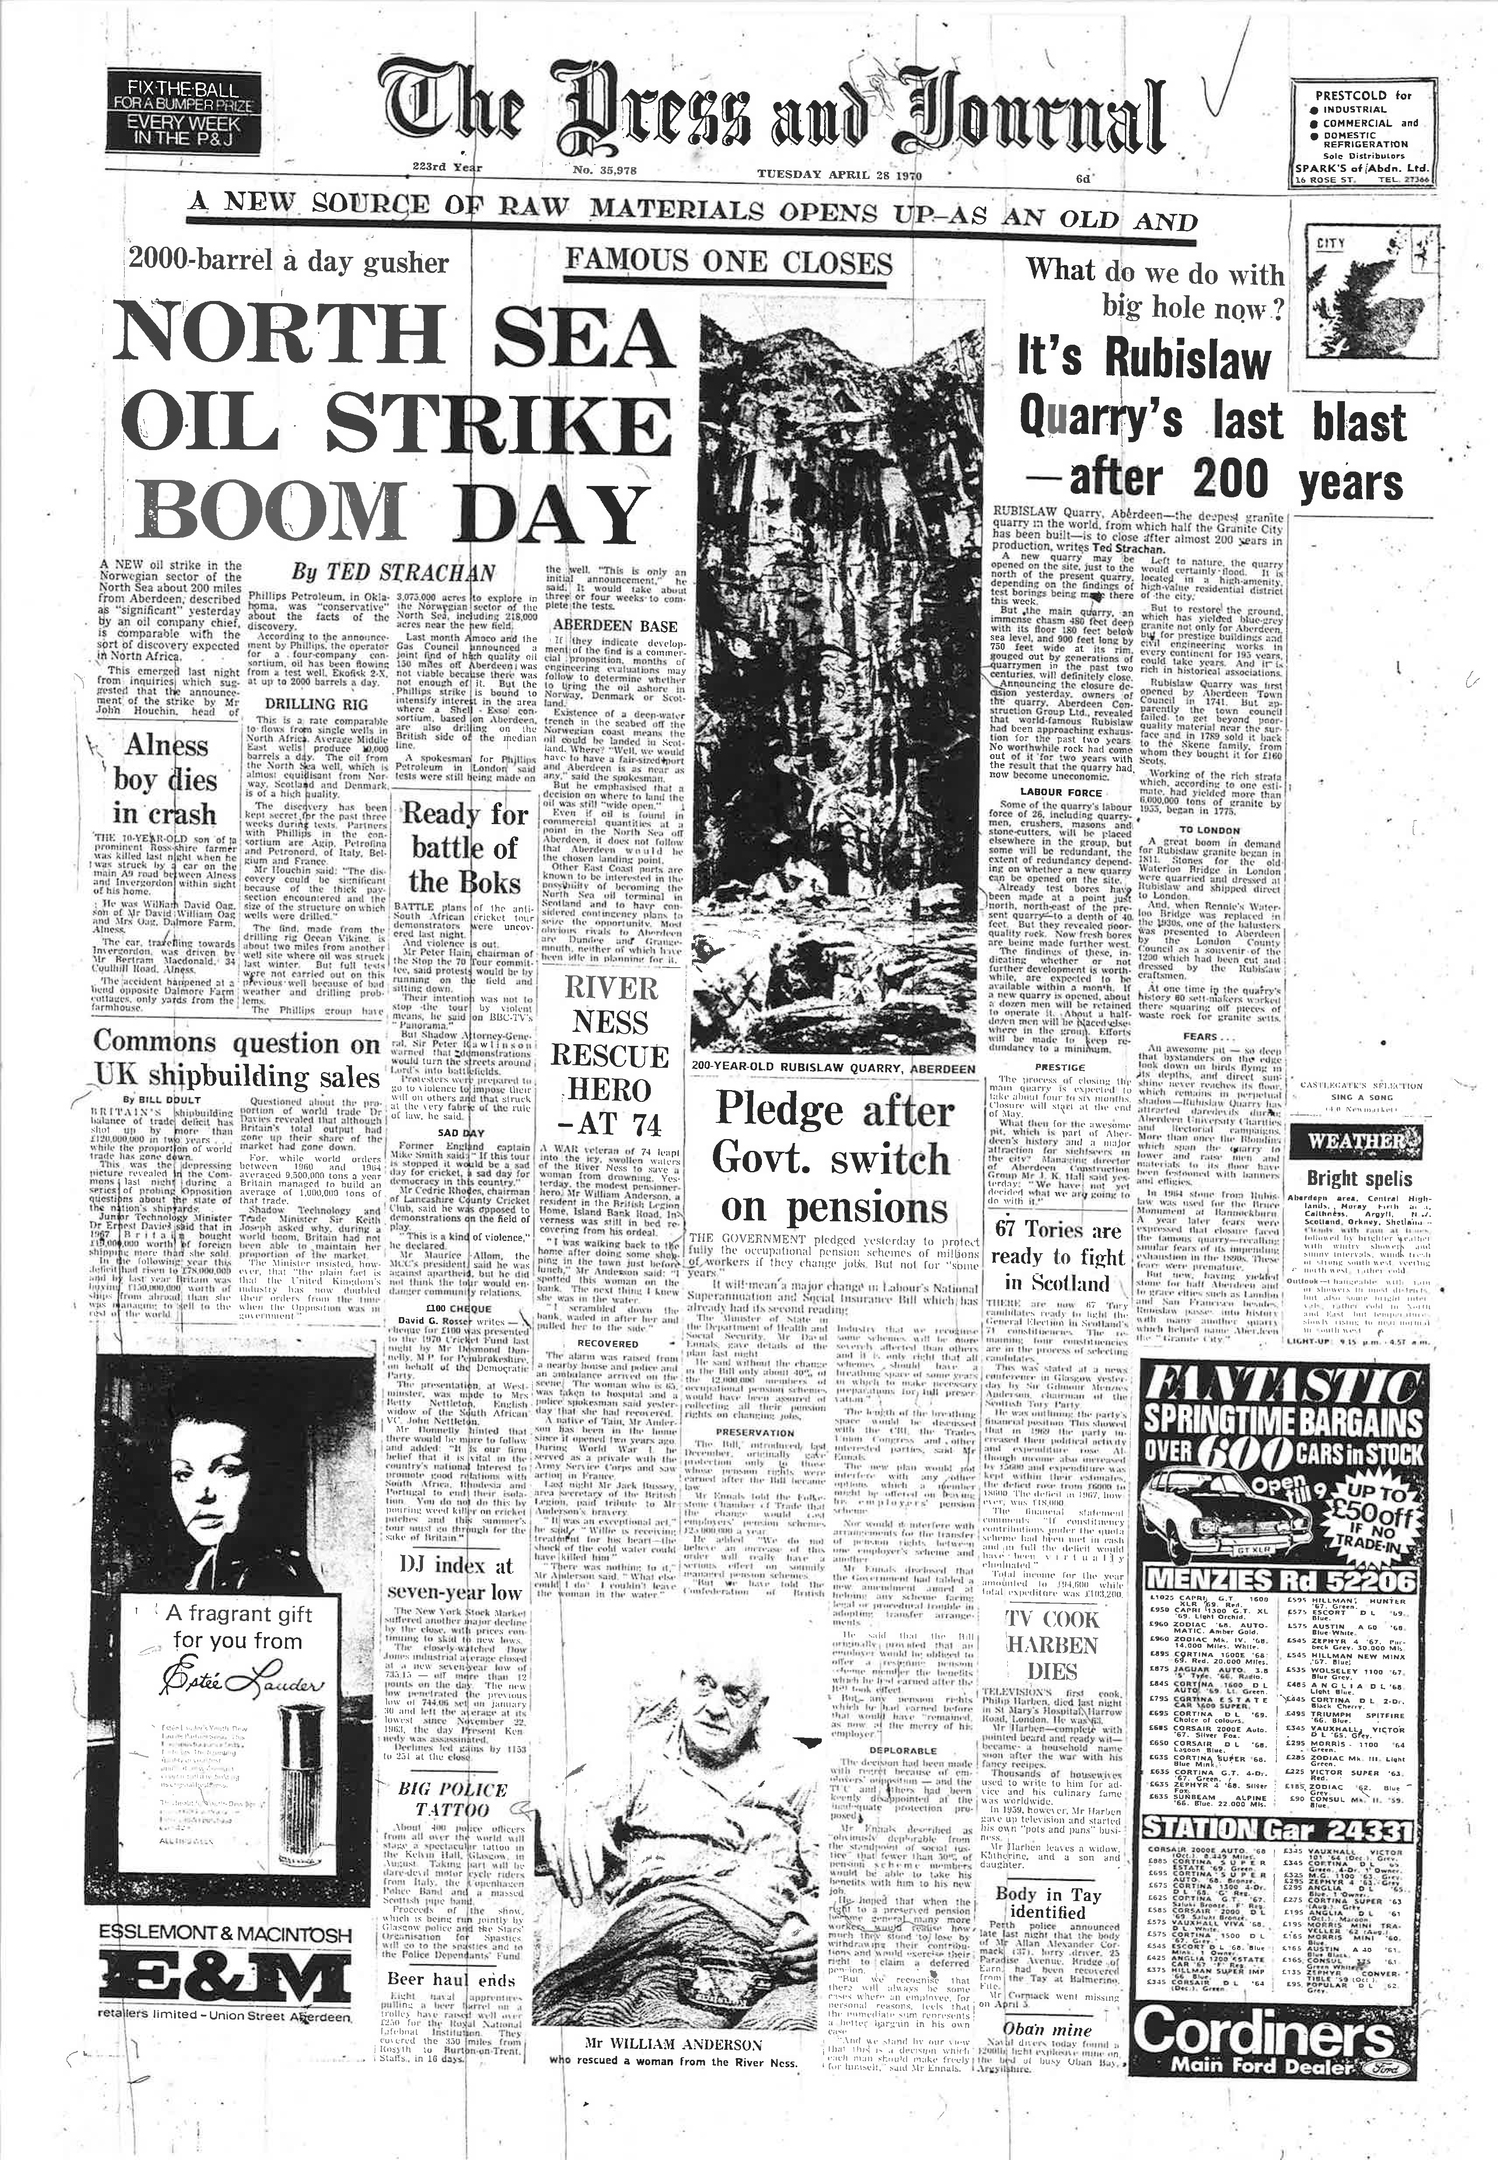 The front page from April, 1970